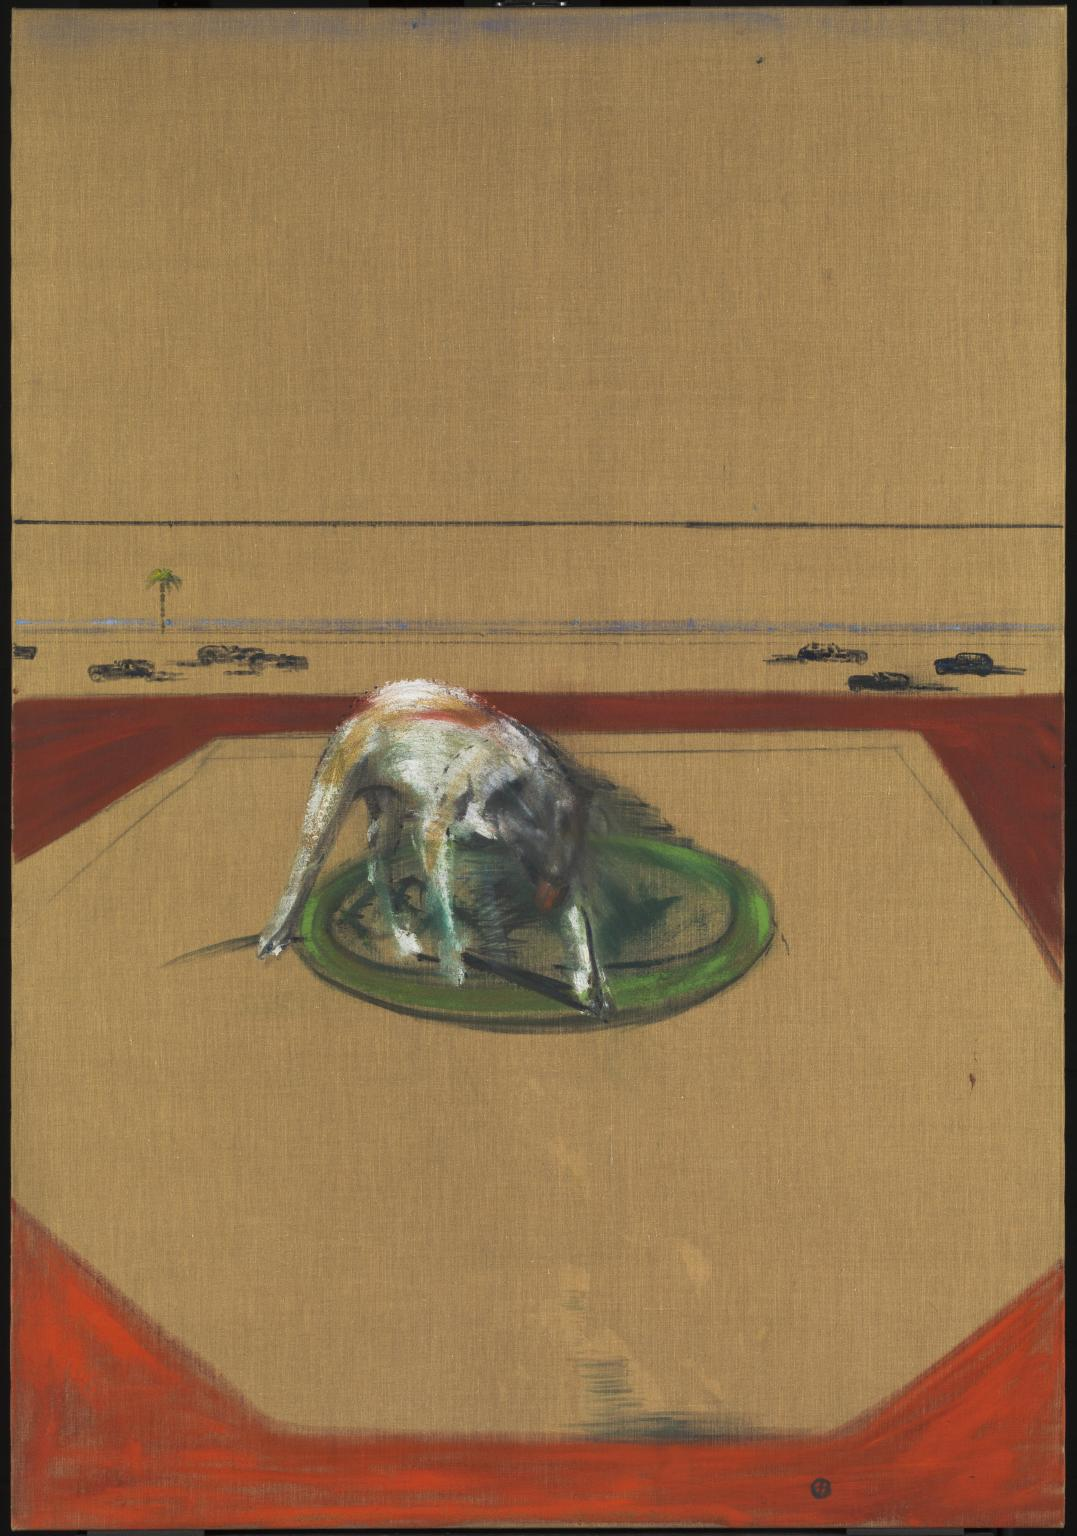 FRANCIS BACON, DOG, 1952, OIL CHARCOAL AND SAND ON CANVAS, 1981 x 1372 mm, TATE COLLECTION, LONDON